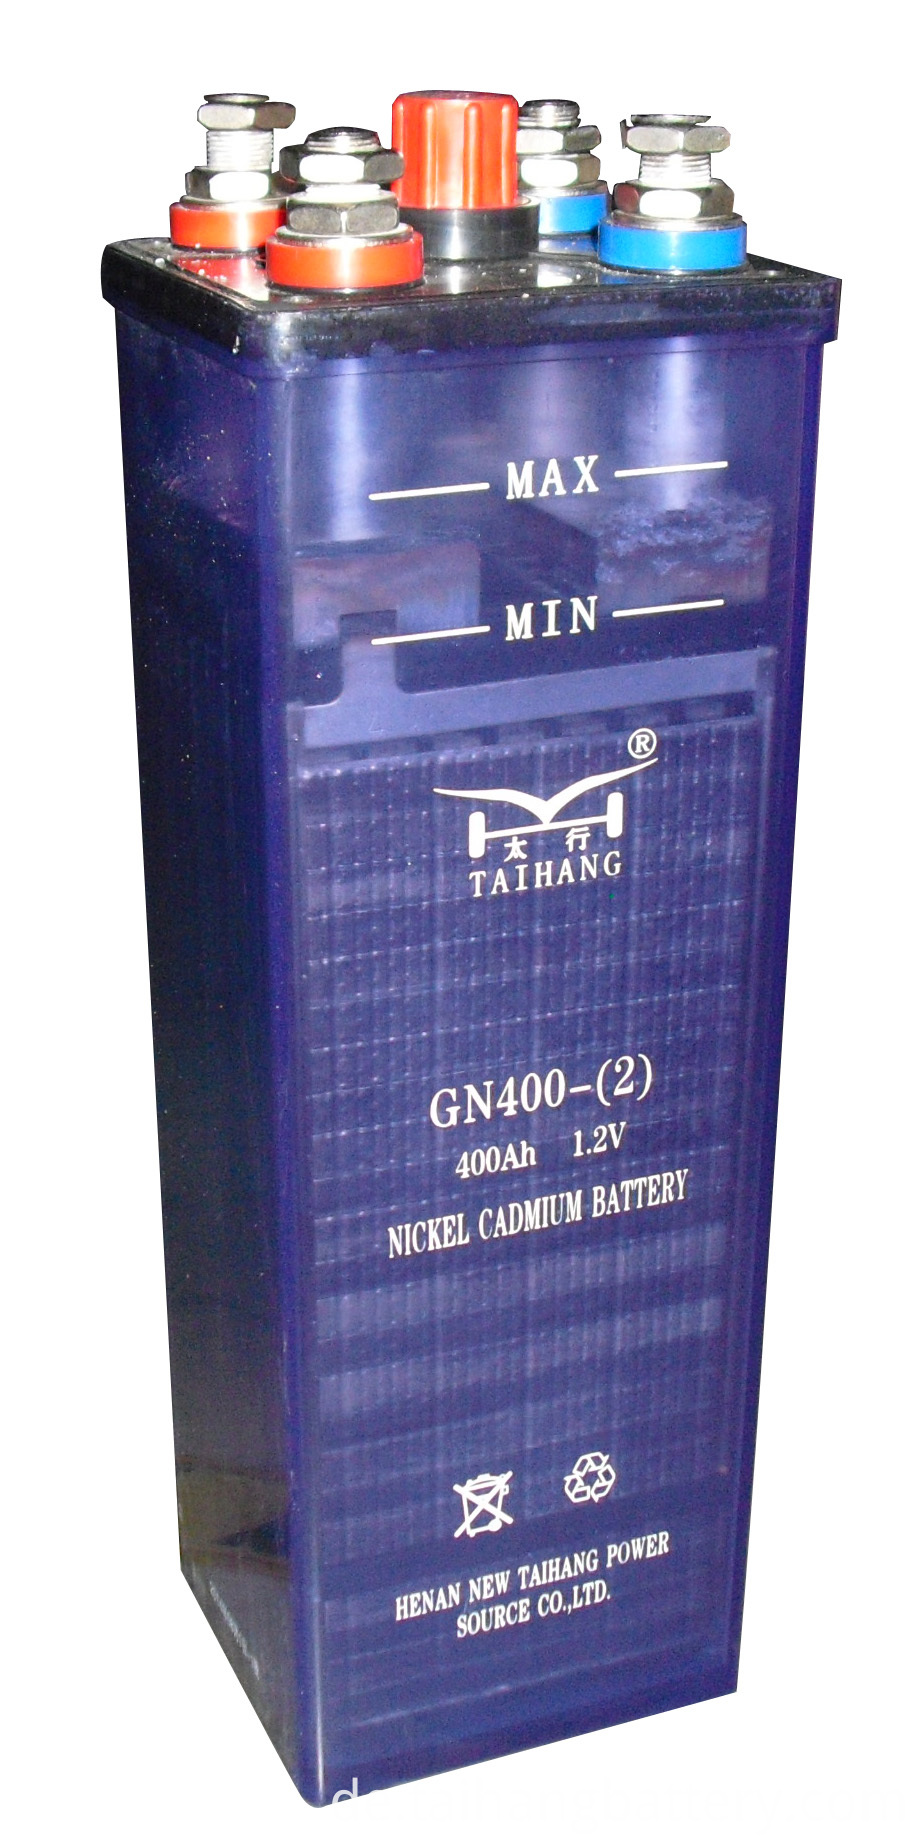 Nickel Cadmium Battery 400ah